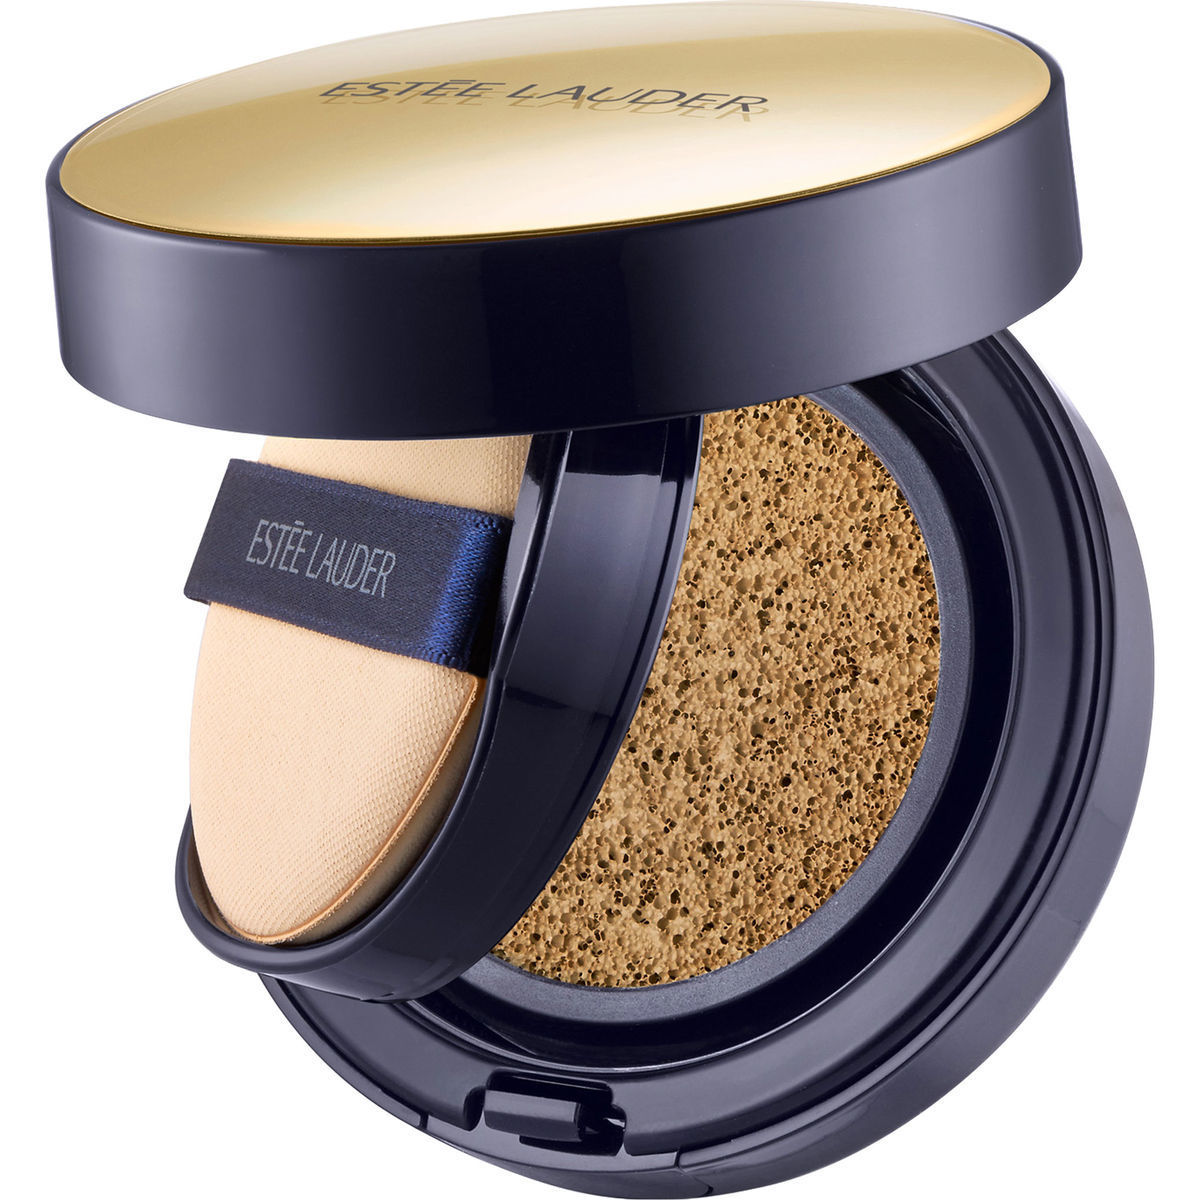 Bild 1 von Estée Lauder Double Wear Cushion Compact BB, Make-Up SPF 50